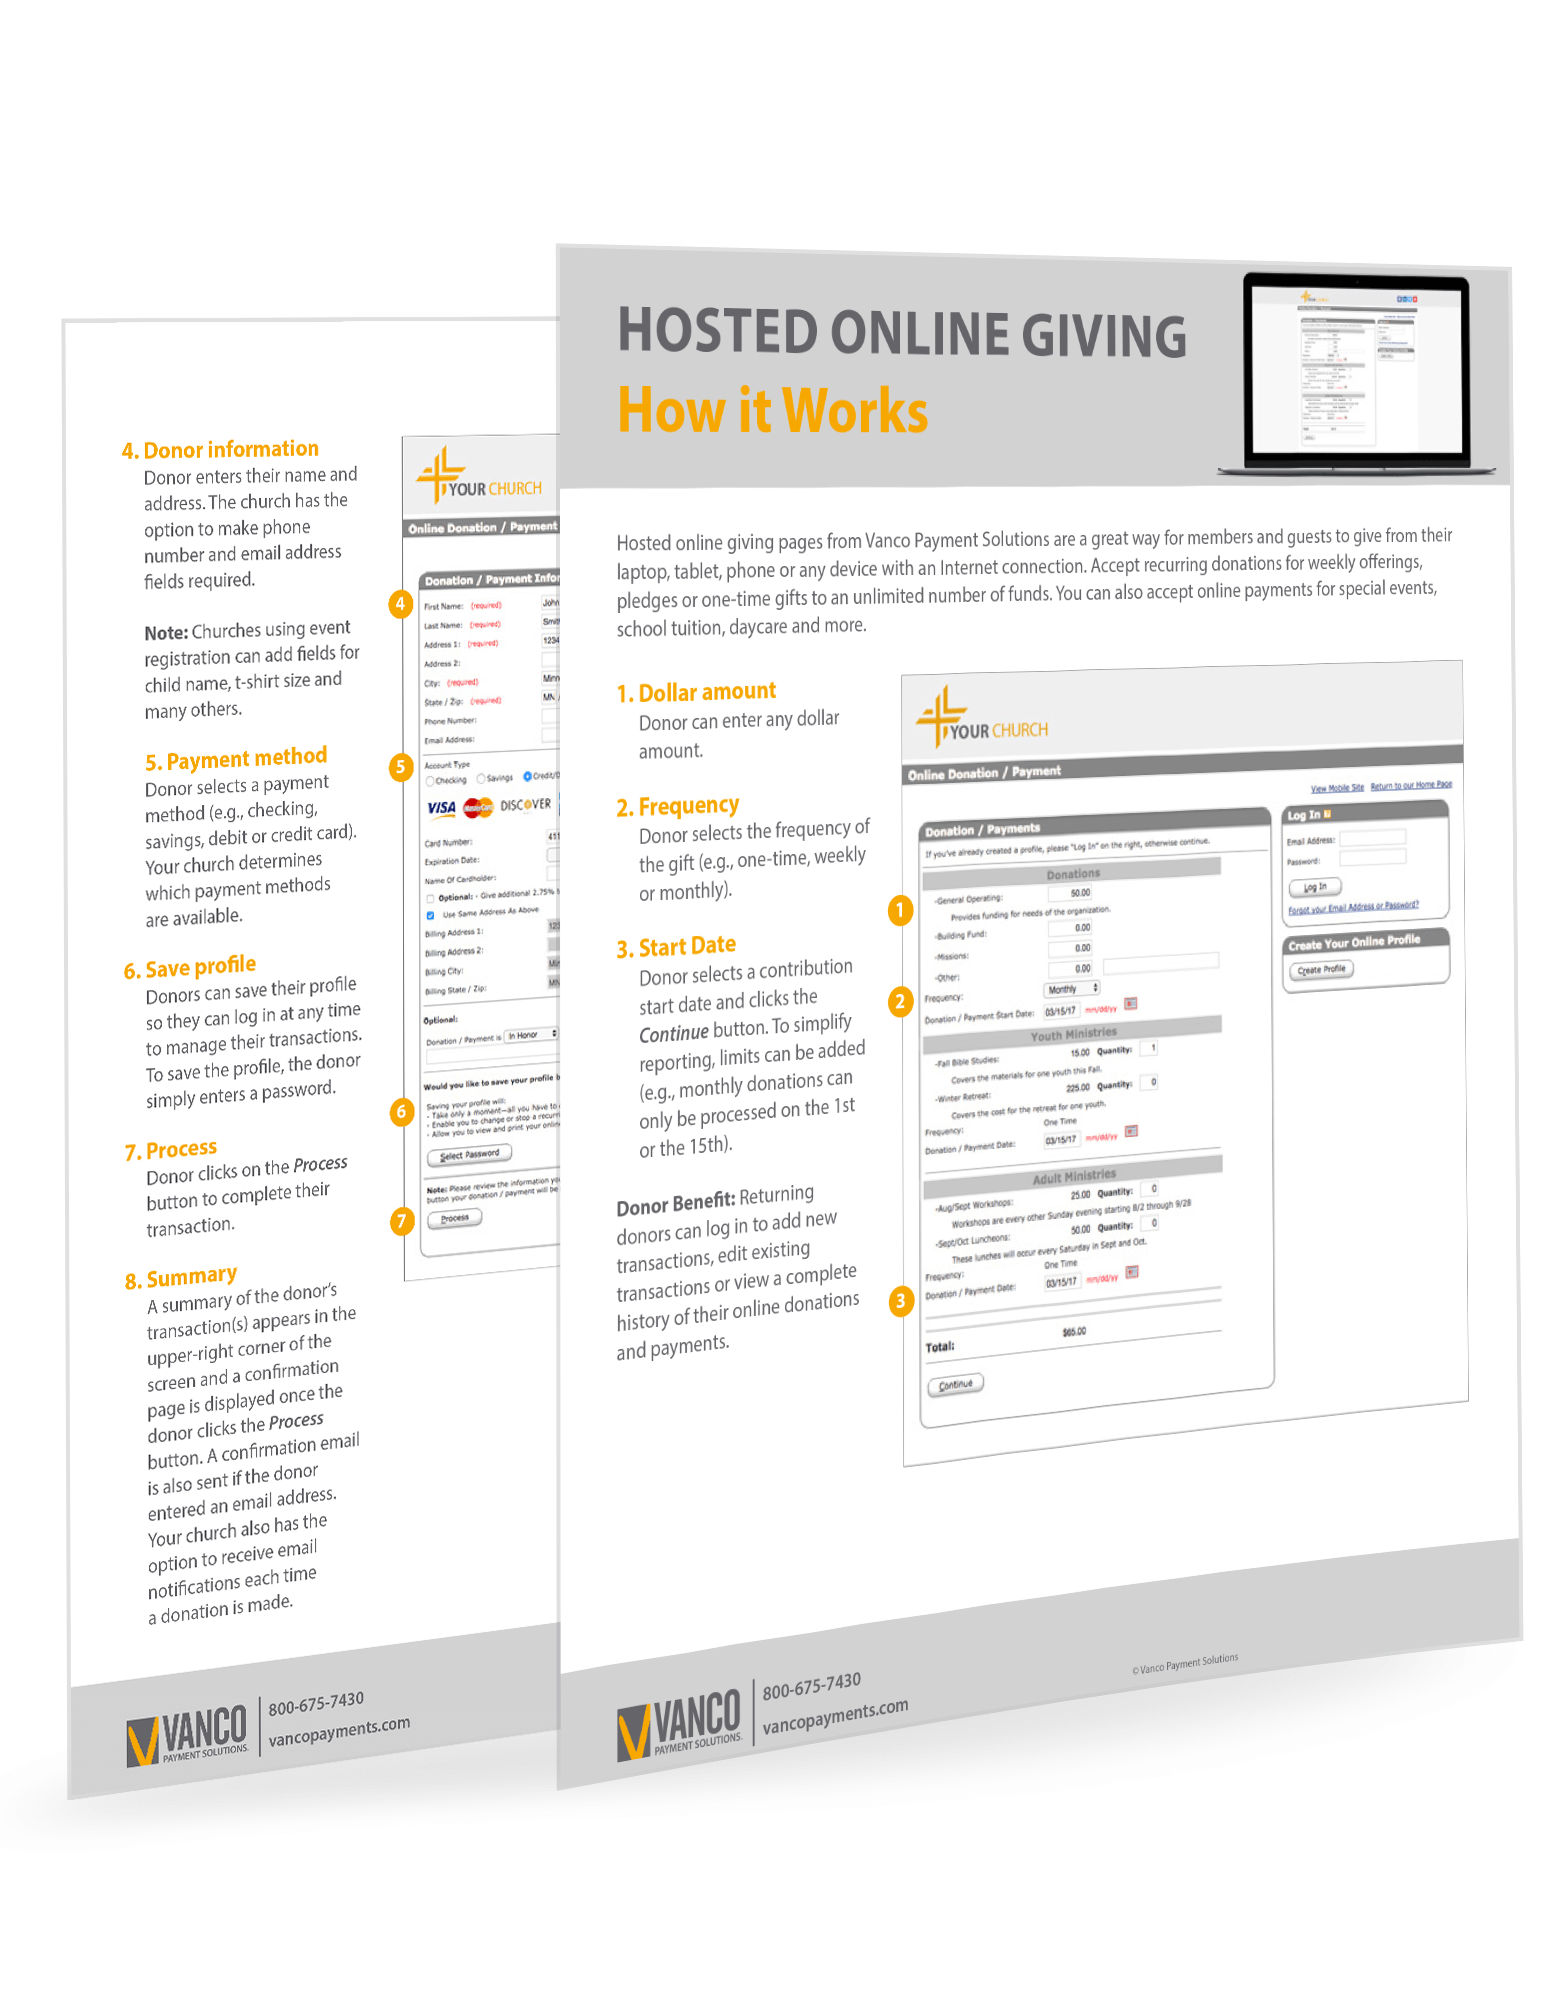 GivePlus Online Hosted - How It Works